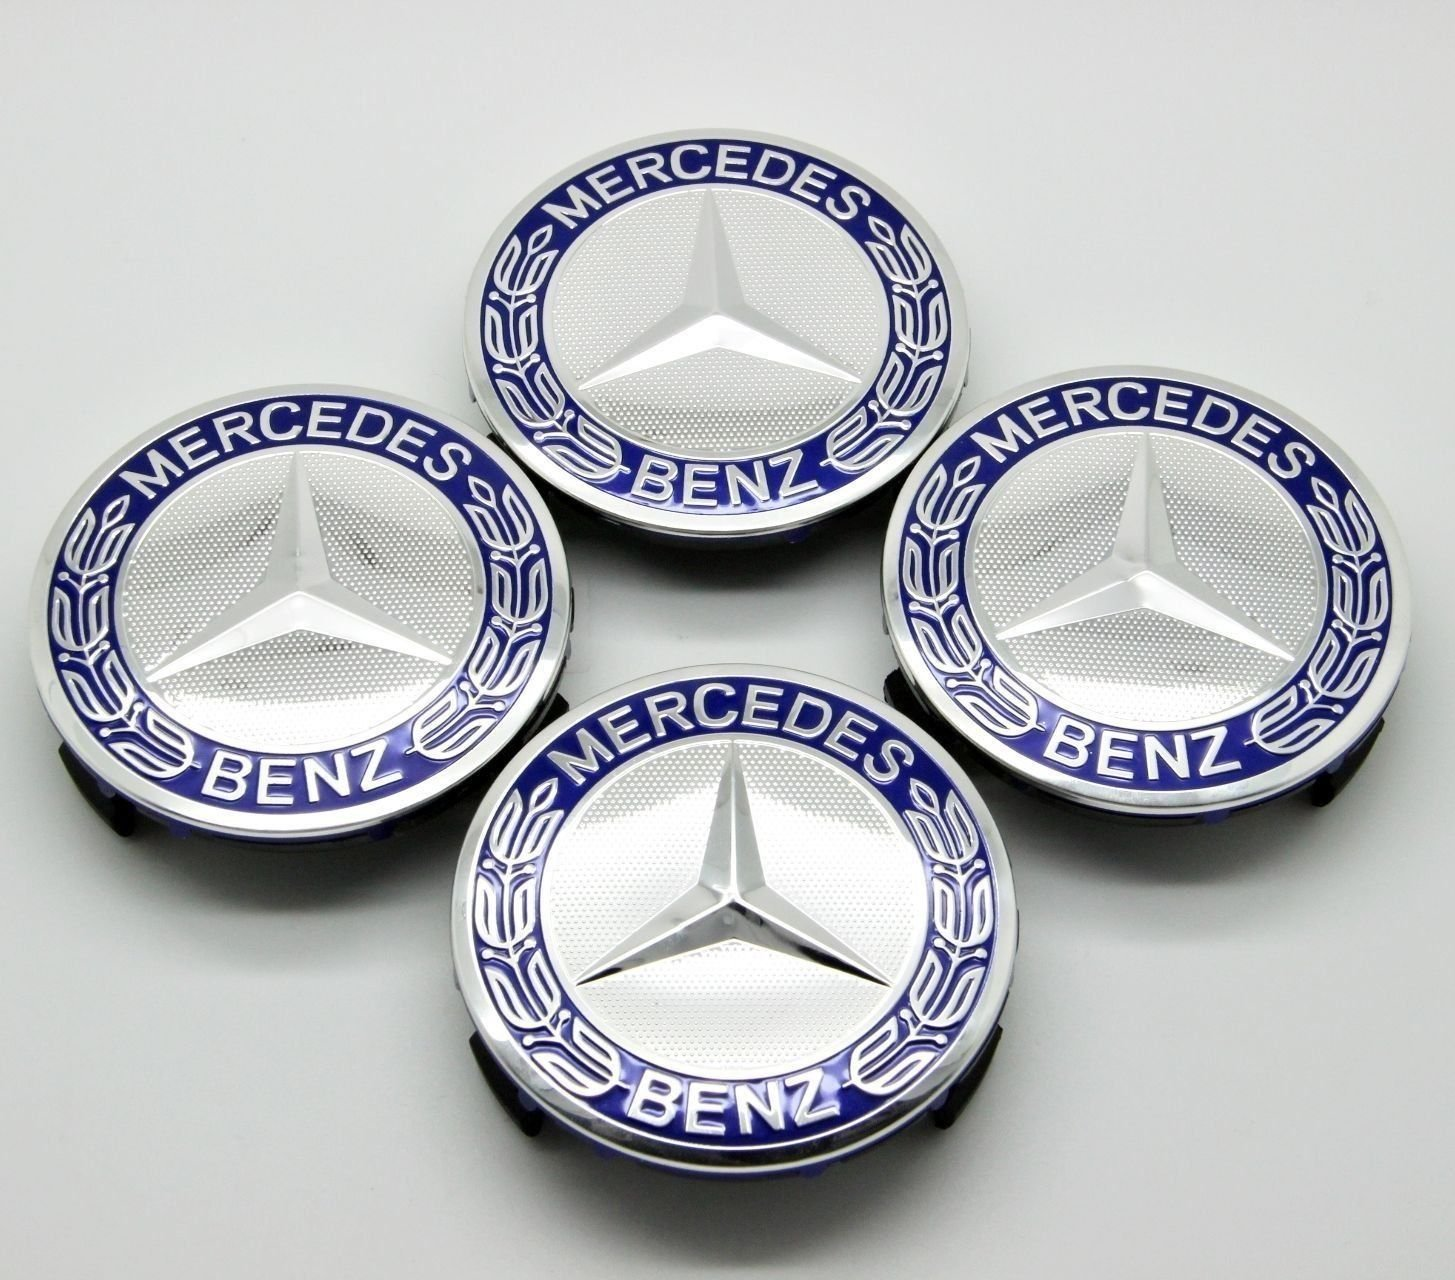 WHEEL CENTER CAPS BLUE RIM HUBCAPS MB MERCEDES-BENZ EMBLEM 4PCS 75mm C/E/S/CLS AOWIFT